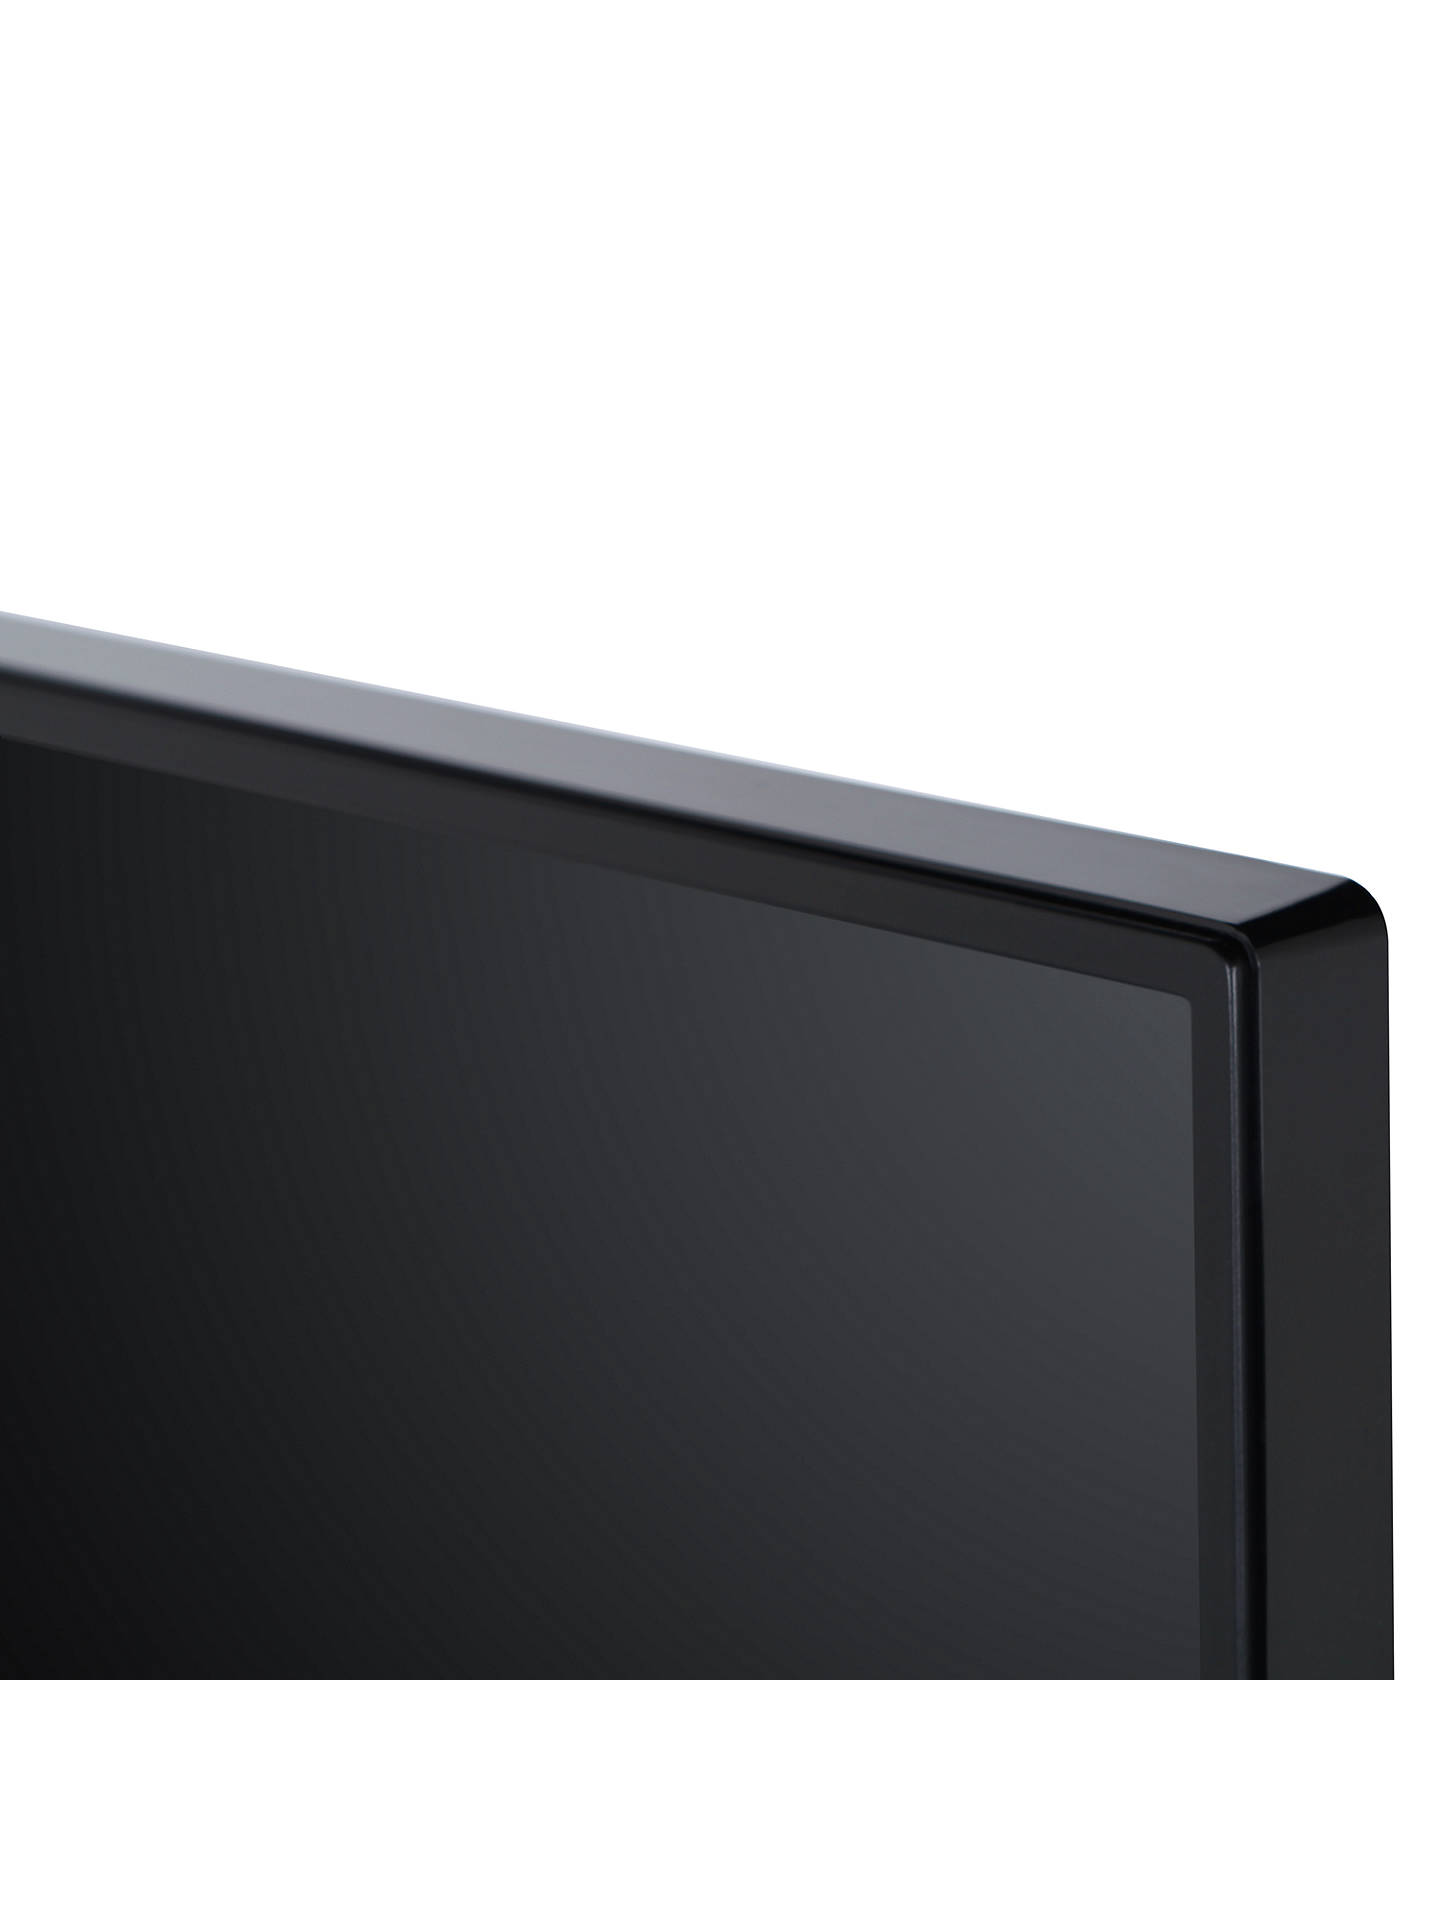 "BuyToshiba 43U6763DB LED 4K Ultra HD Smart TV, 43"" with Built-In Wi-Fi, Freeview HD & Freeview Play, Black Online at johnlewis.com"